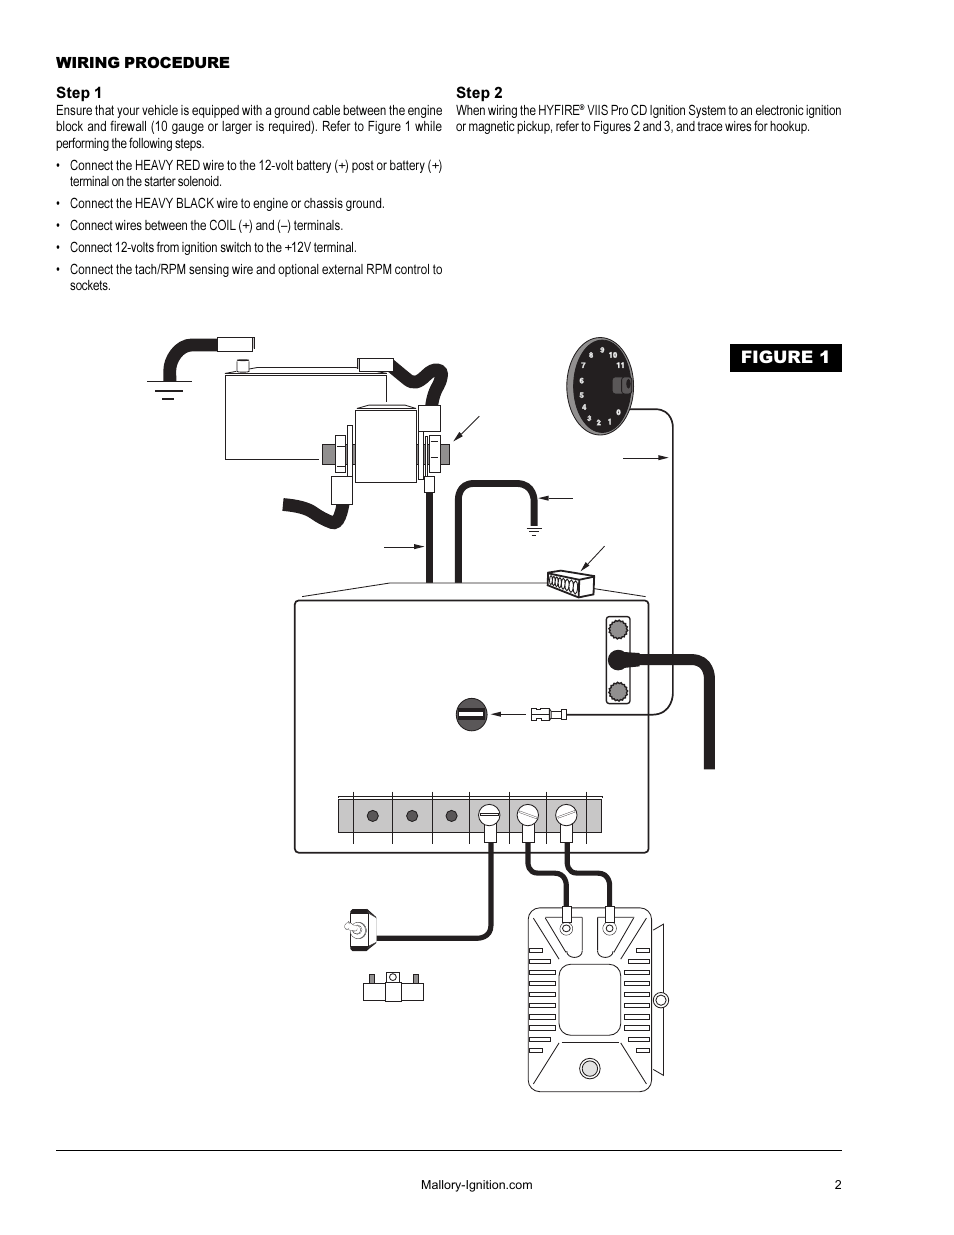 mallory ignition mallory hyfire vii series electronic ignition controls 667s page3?resize\\\\\\\\\\\\\\=665%2C861 mallory rev limiter wiring diagram mallory furniture, mallory msd hvc 6600 ignition wiring diagram at creativeand.co